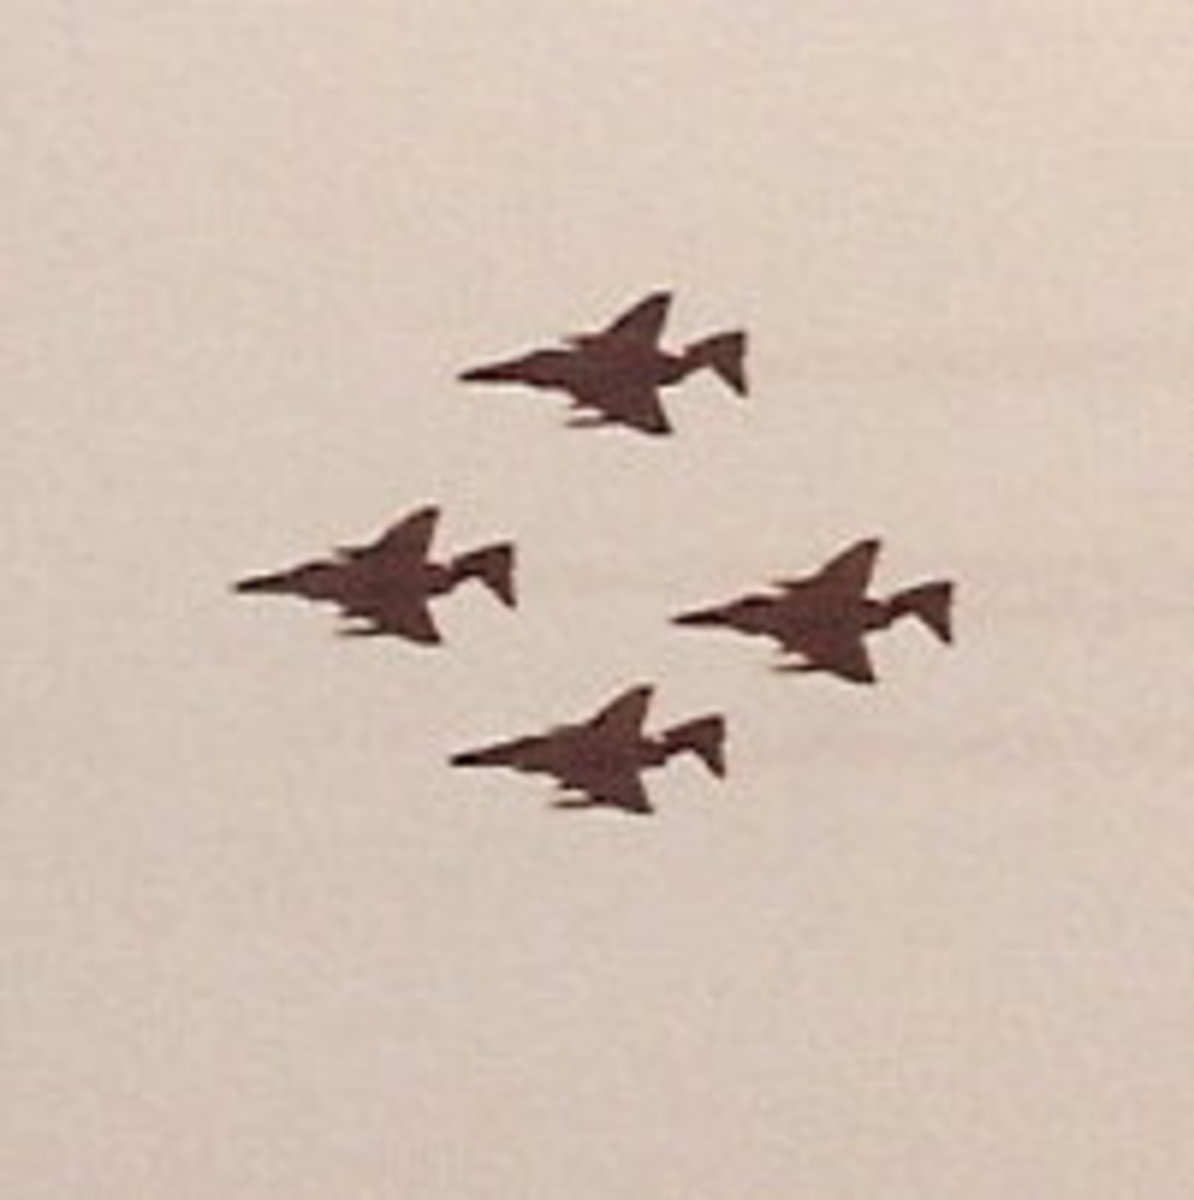 A flight of F-4 Phantom IIs at an Andrews AFB Open House.